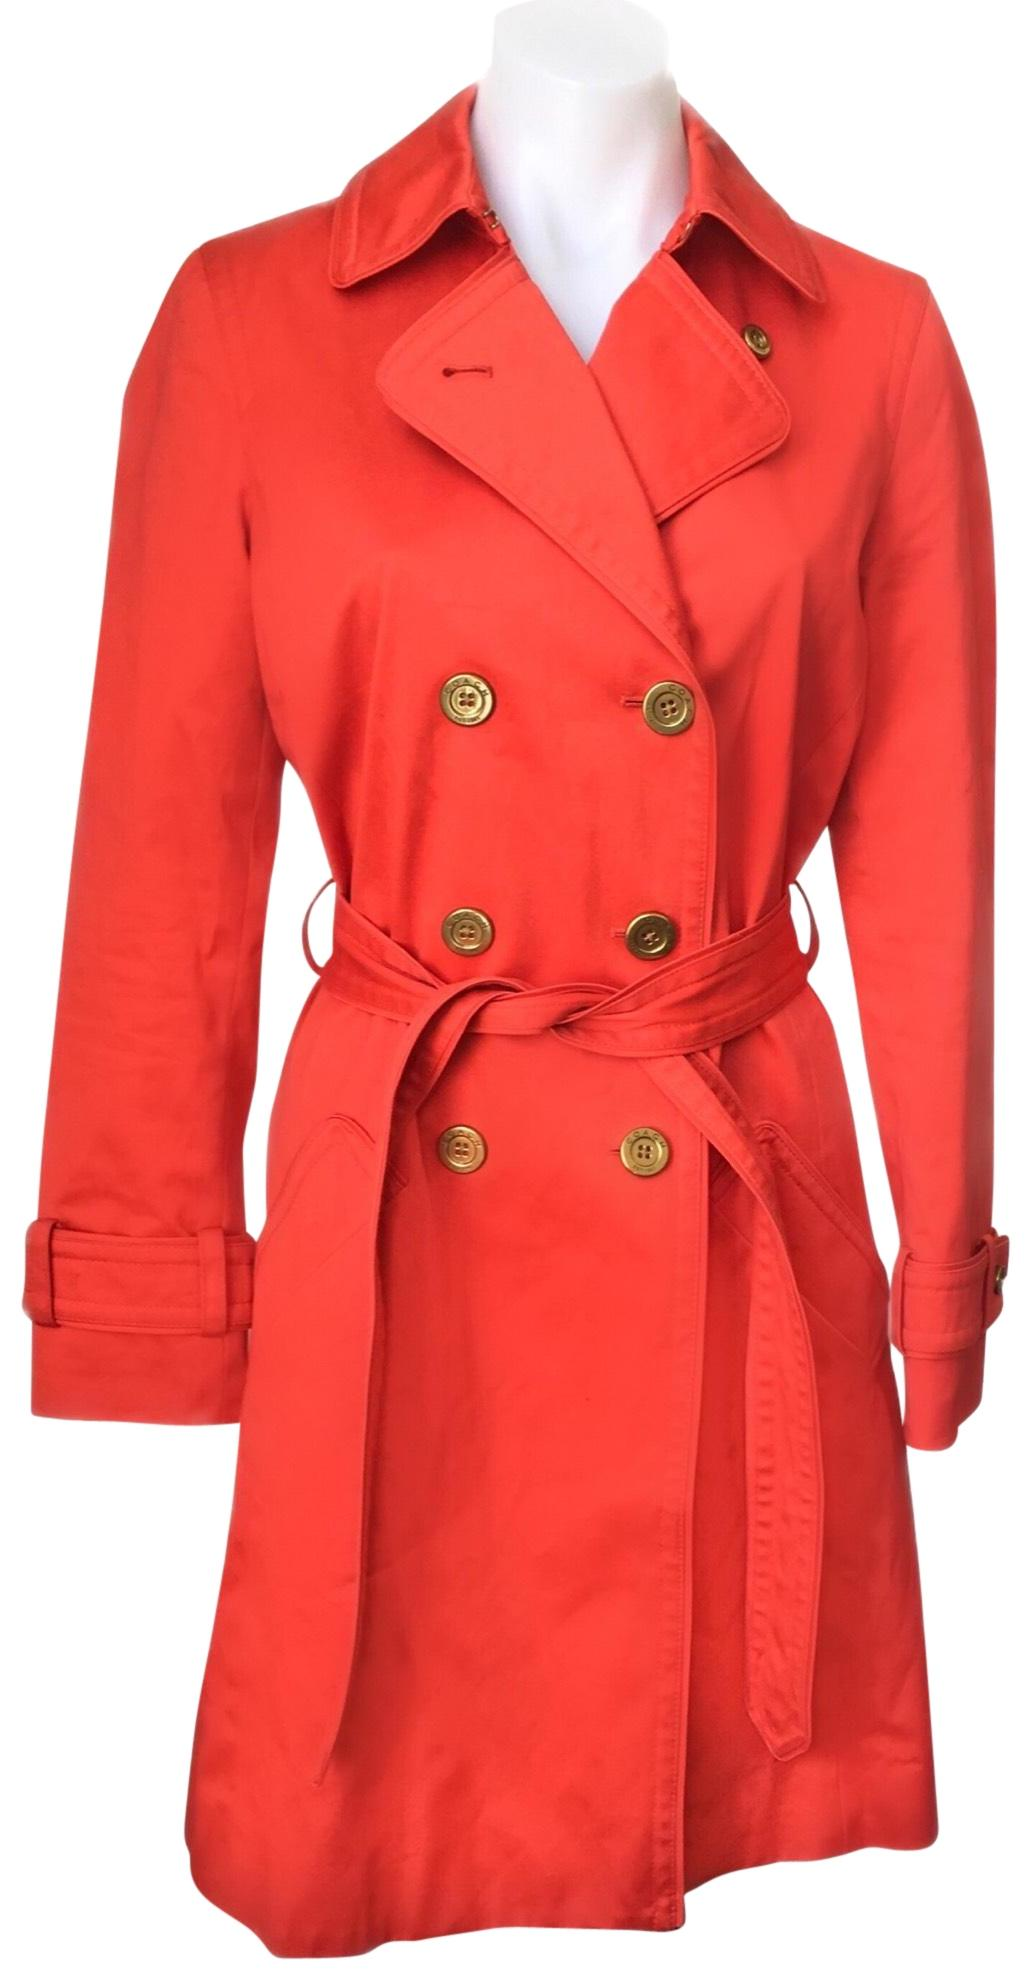 Find red trench coat at ShopStyle. Shop the latest collection of red trench coat from the most popular stores - all in one place.